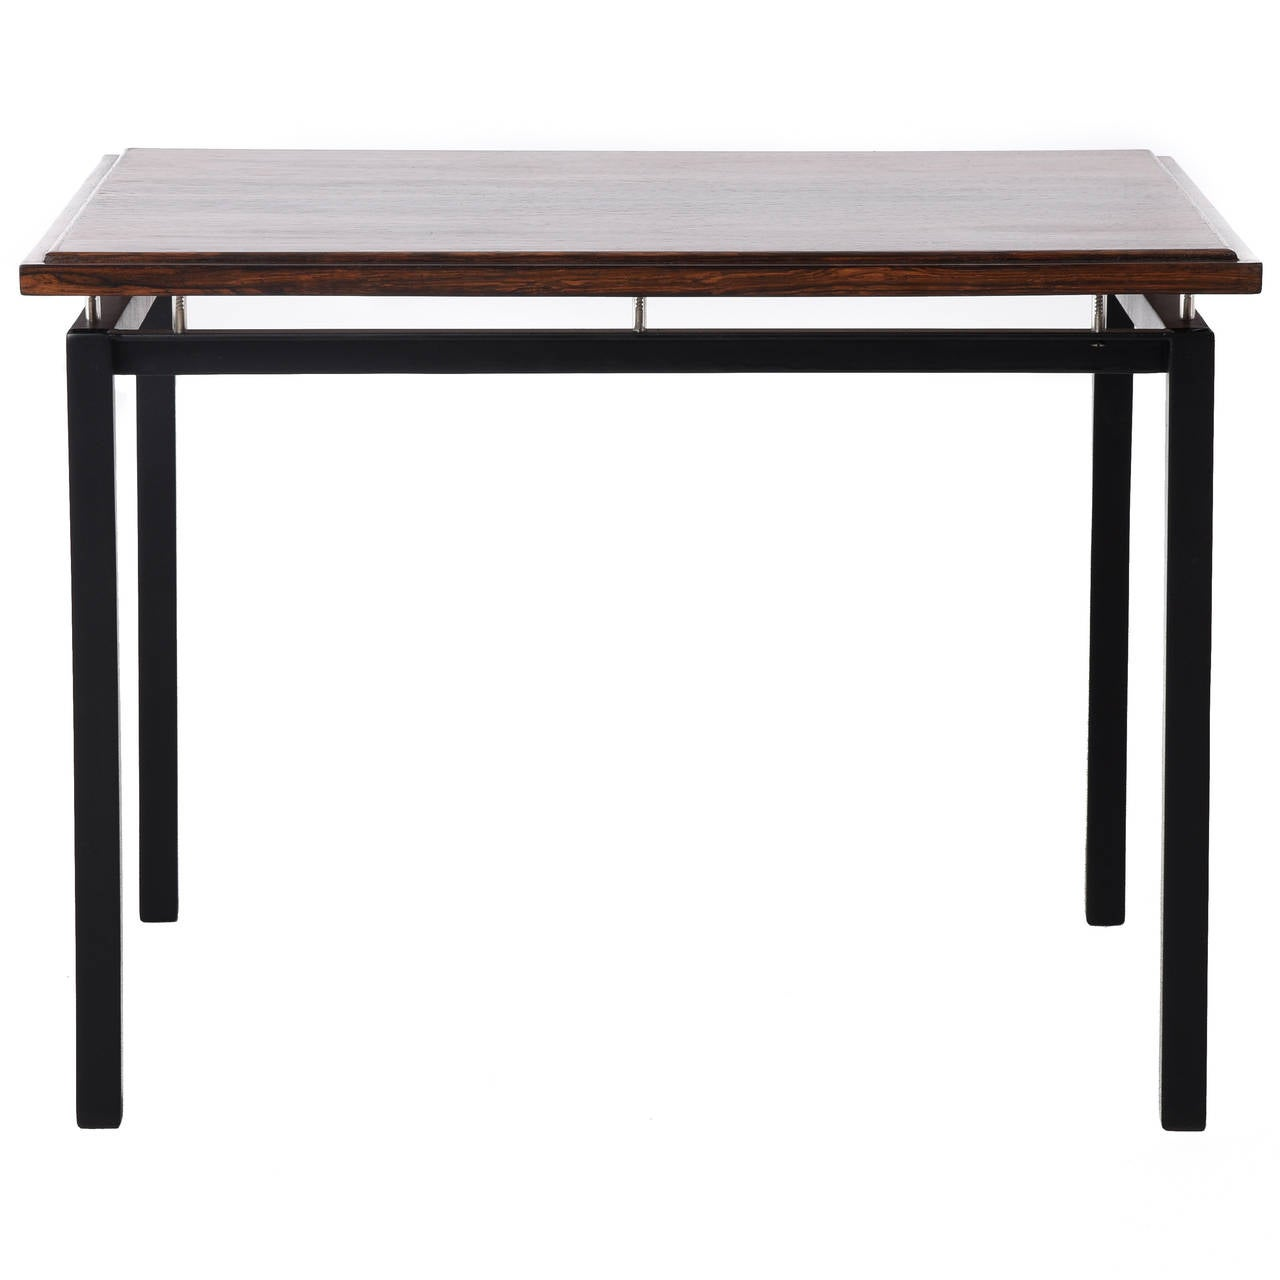 Danish modern rosewood side table with metal base vintage for Side table base